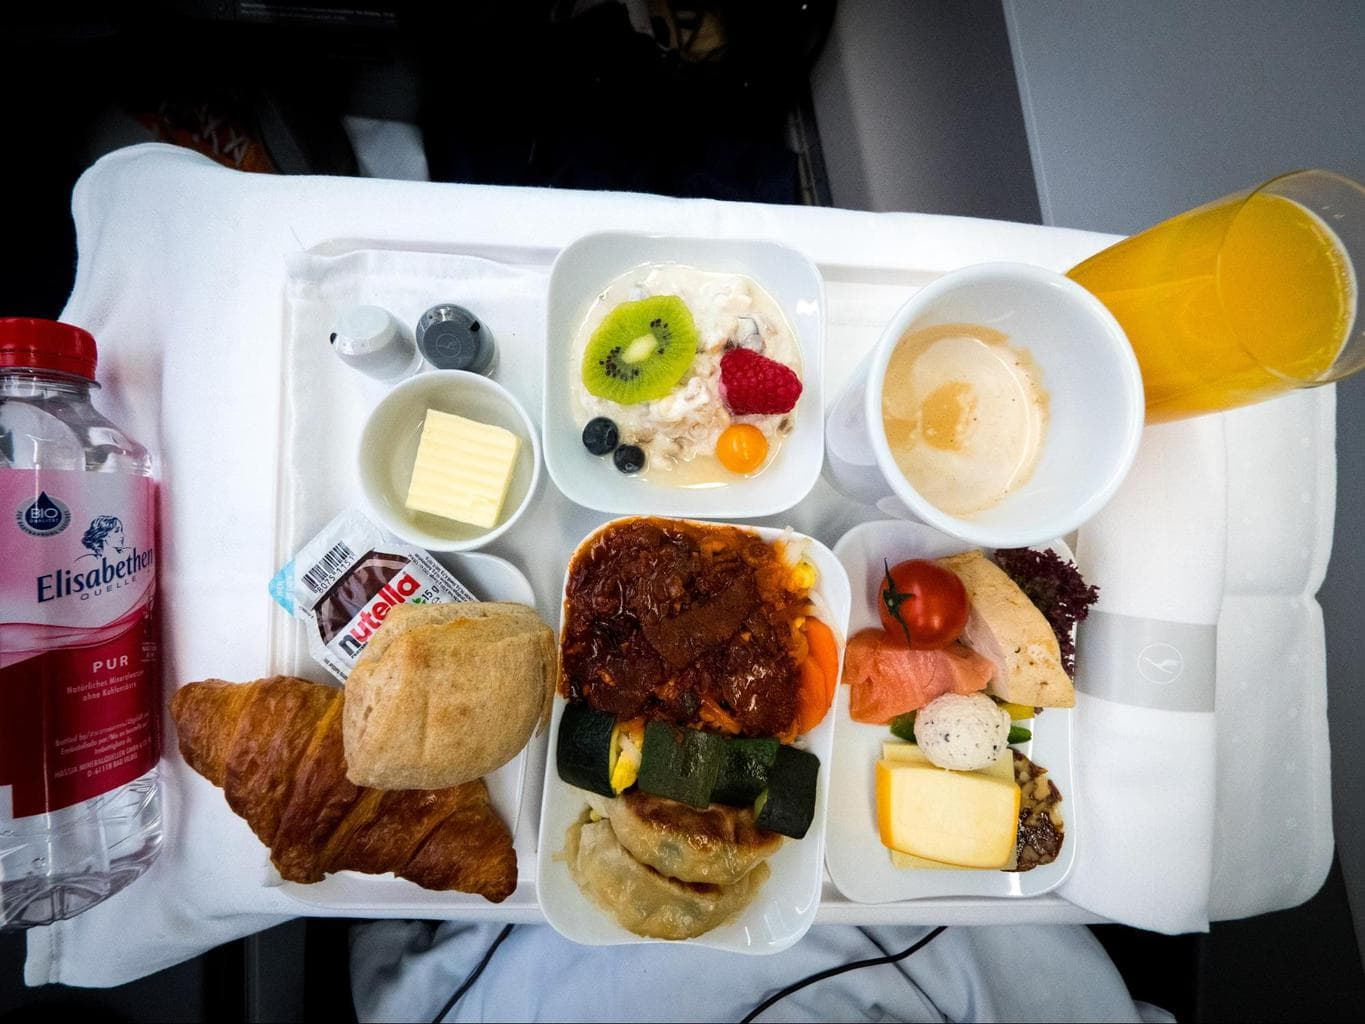 Lufthansa Business Class food - His breakfast